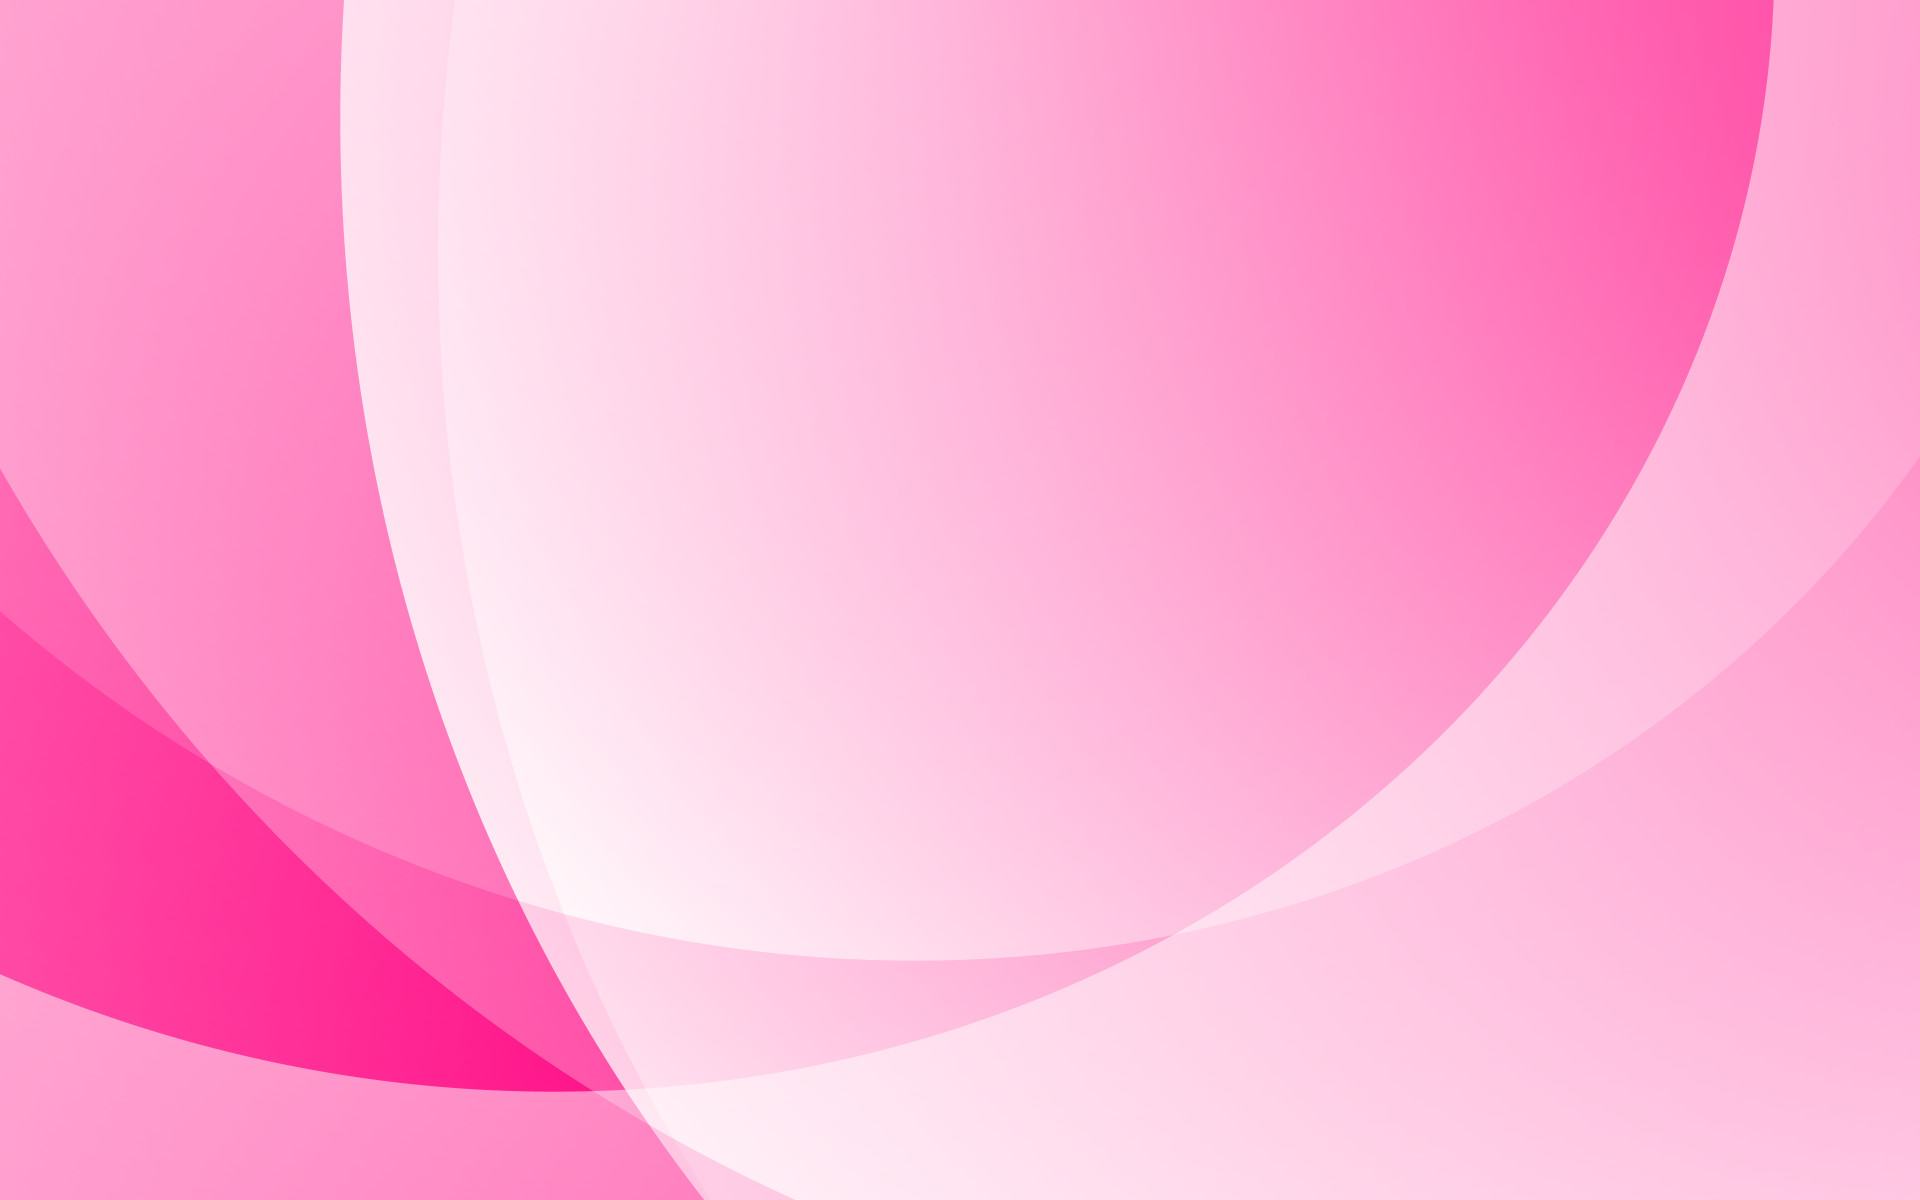 A Very Pink Abstract Wallpaper by foxhead128 on DeviantArt